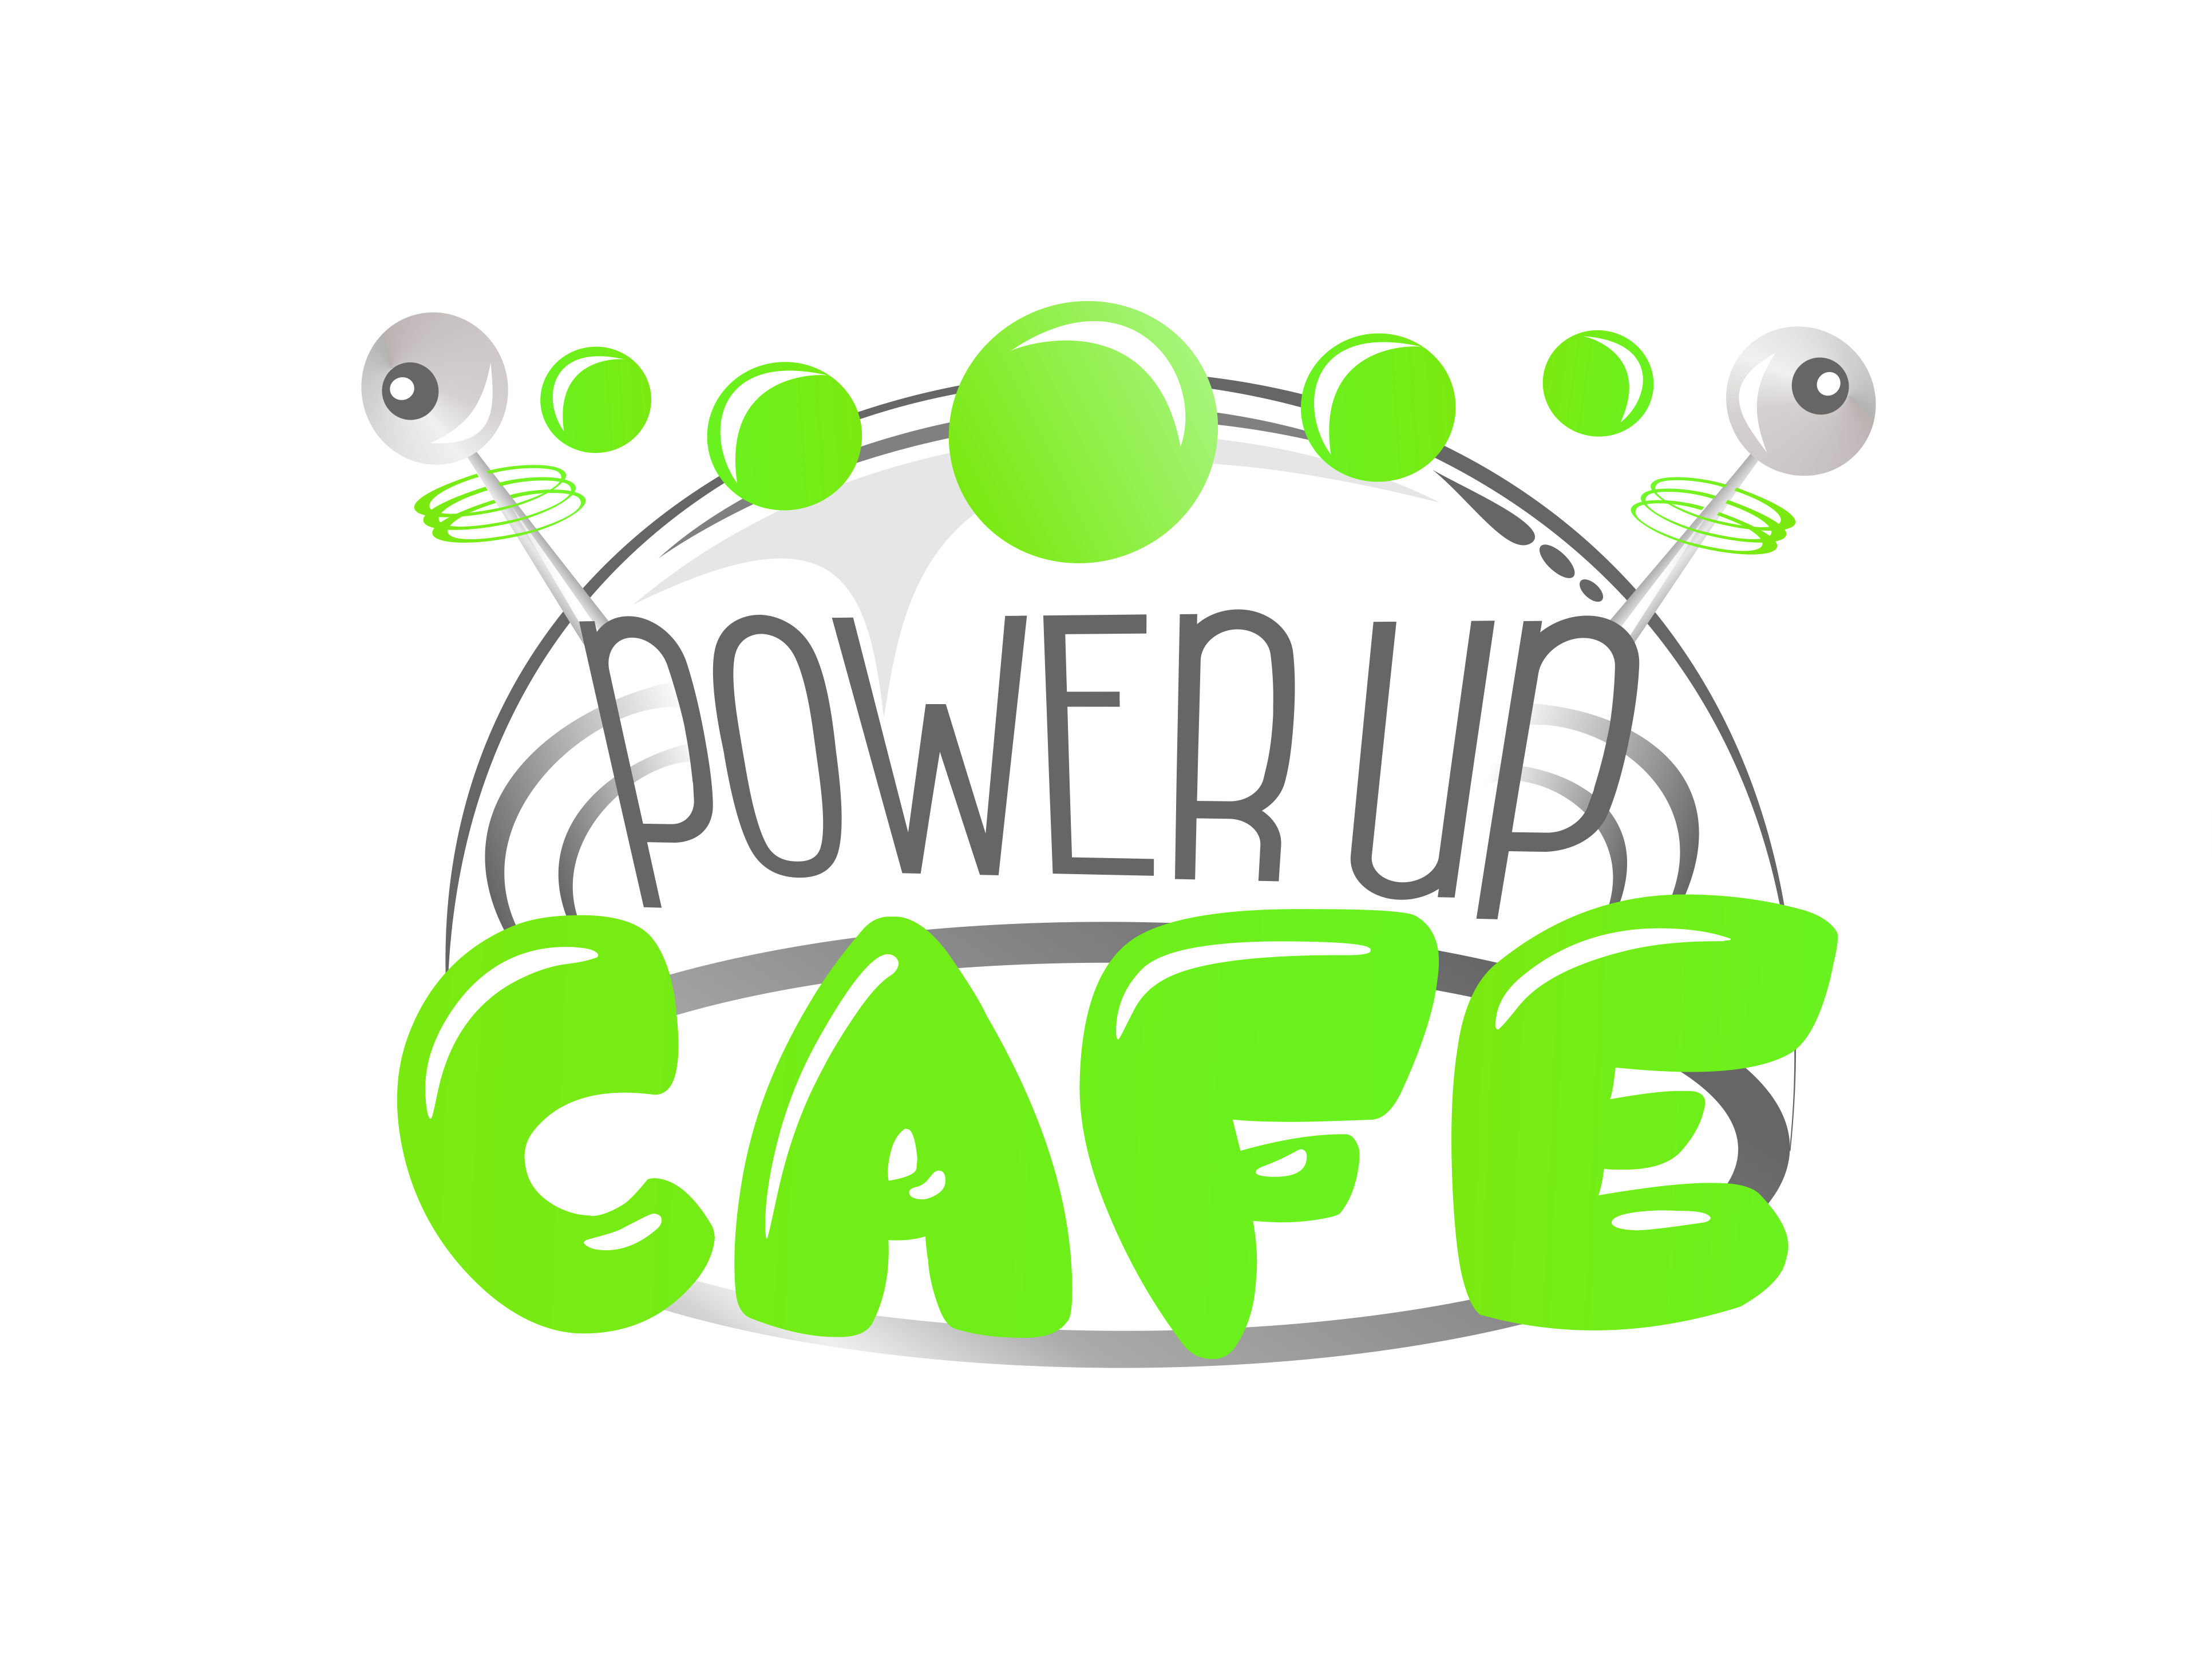 Power Up Cafe